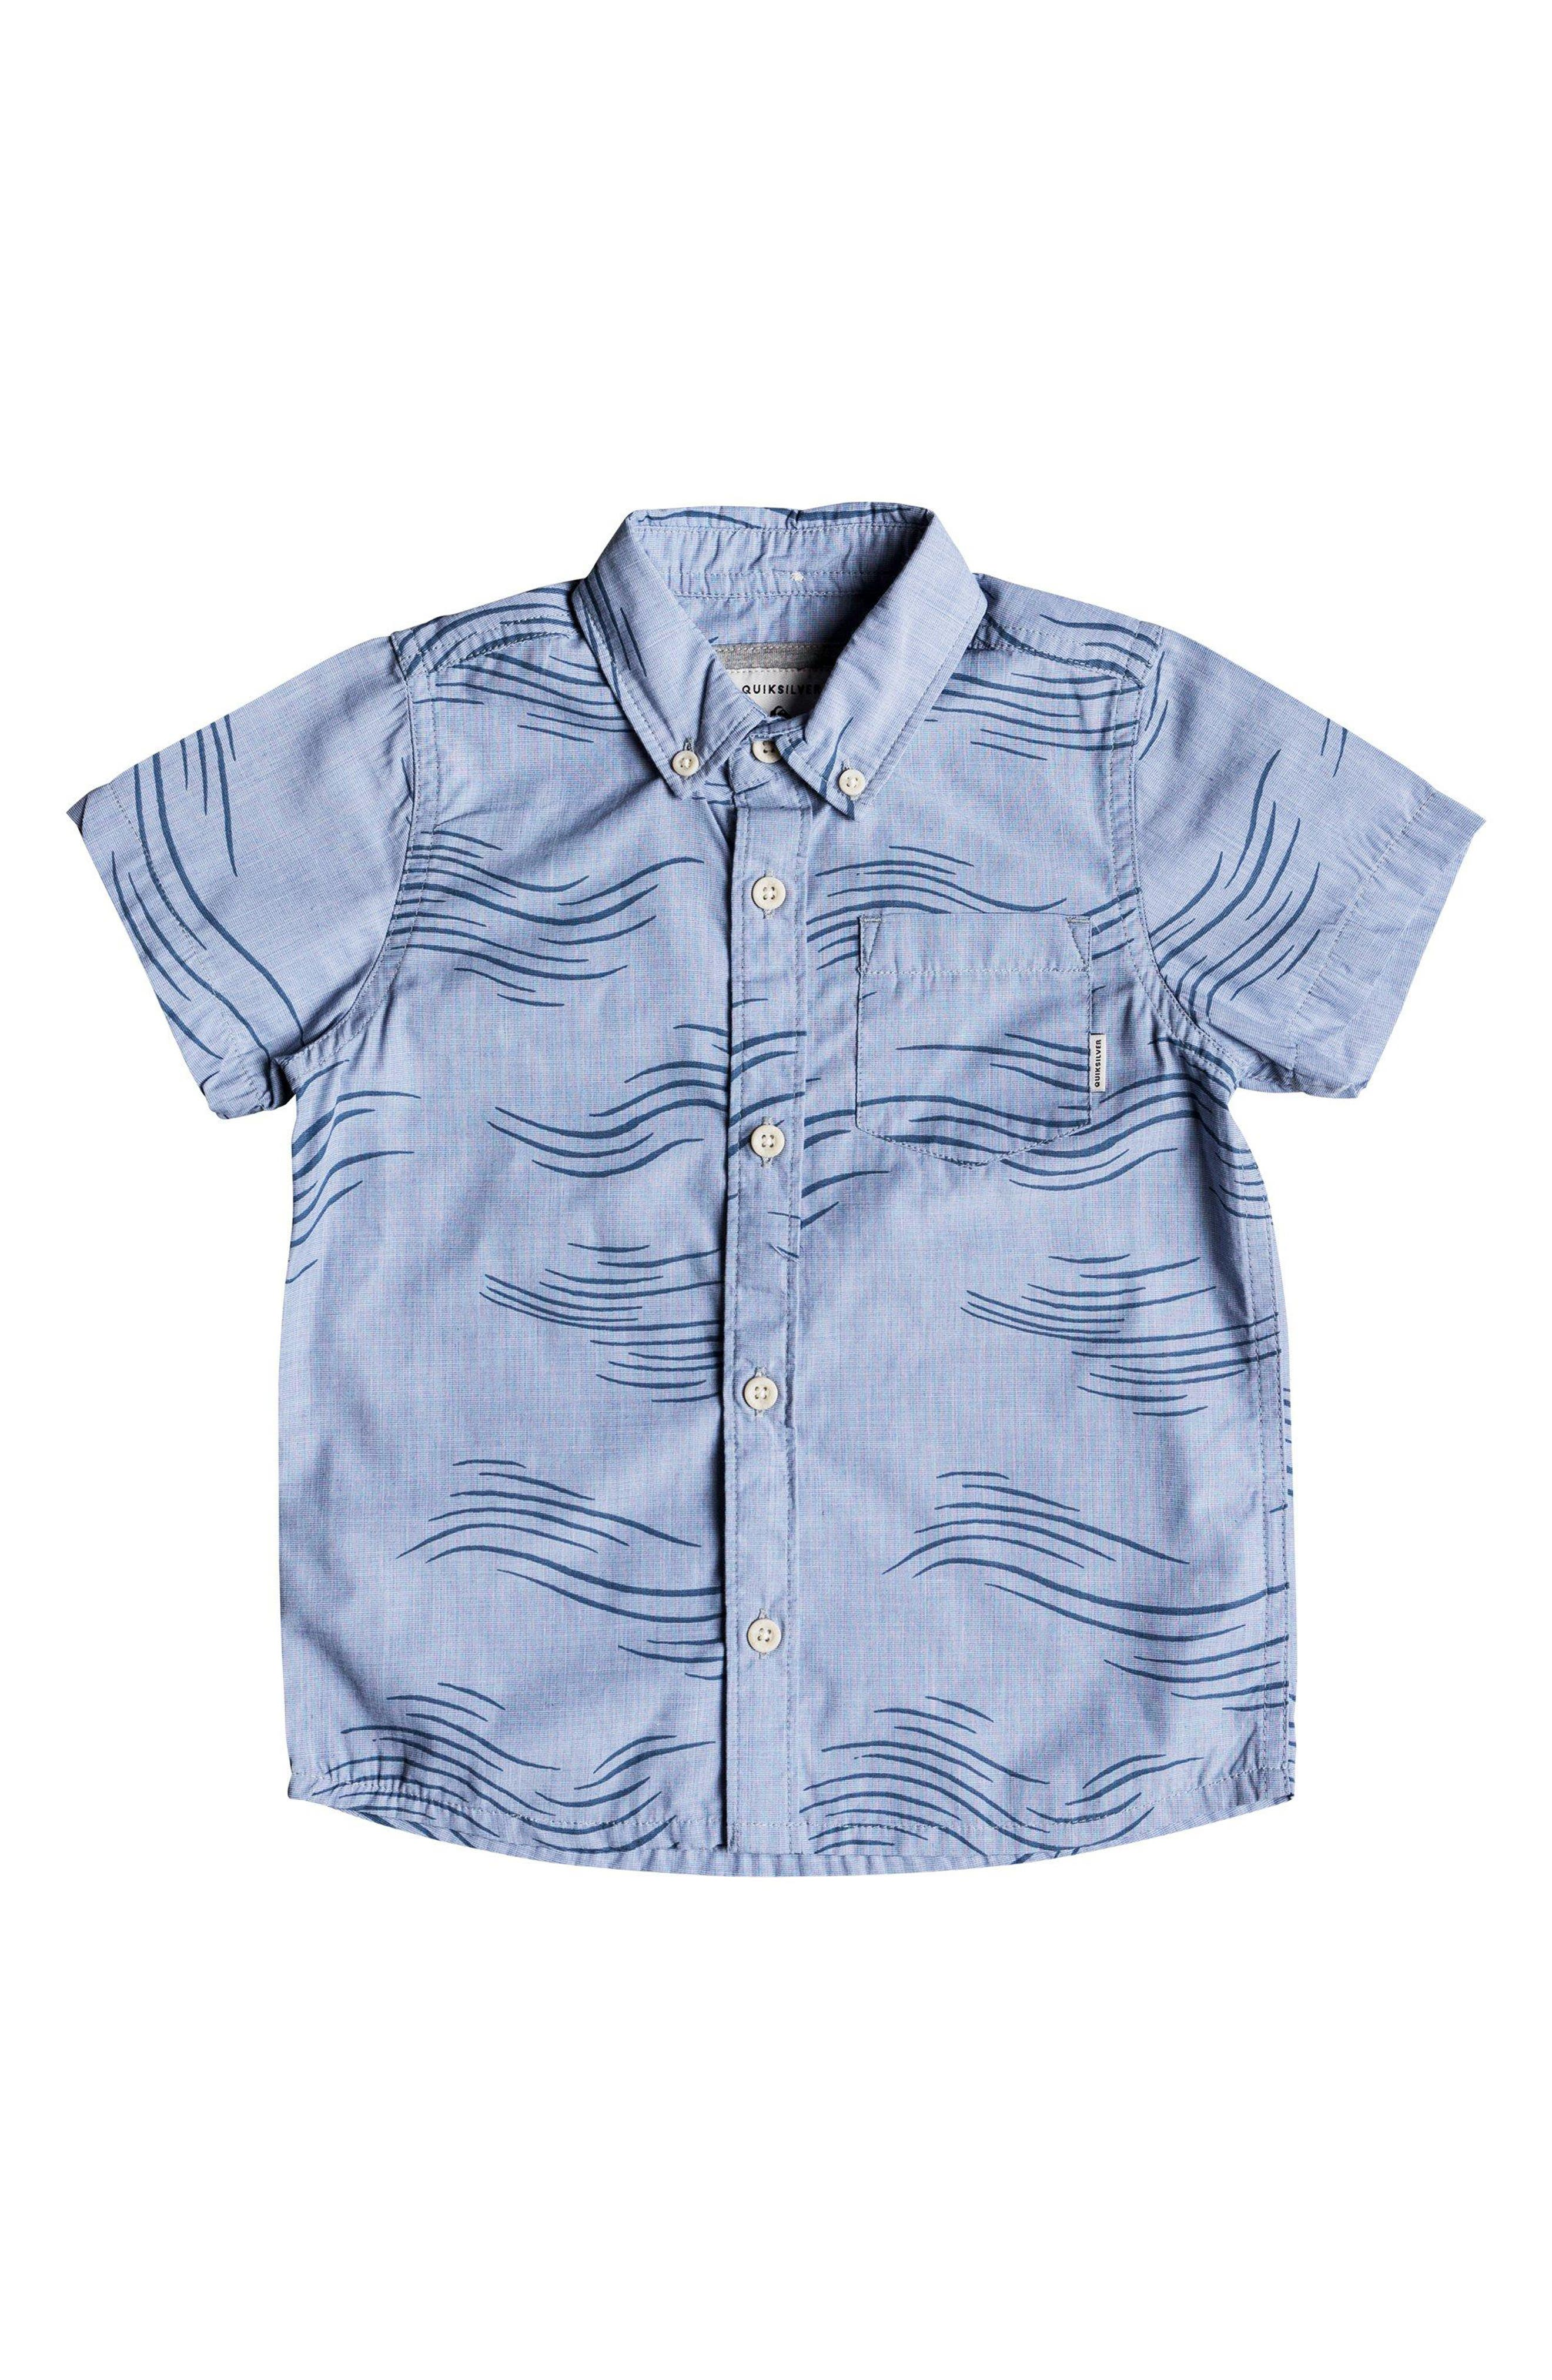 Valley Groove Woven Shirt,                             Main thumbnail 1, color,                             Bijou Blue